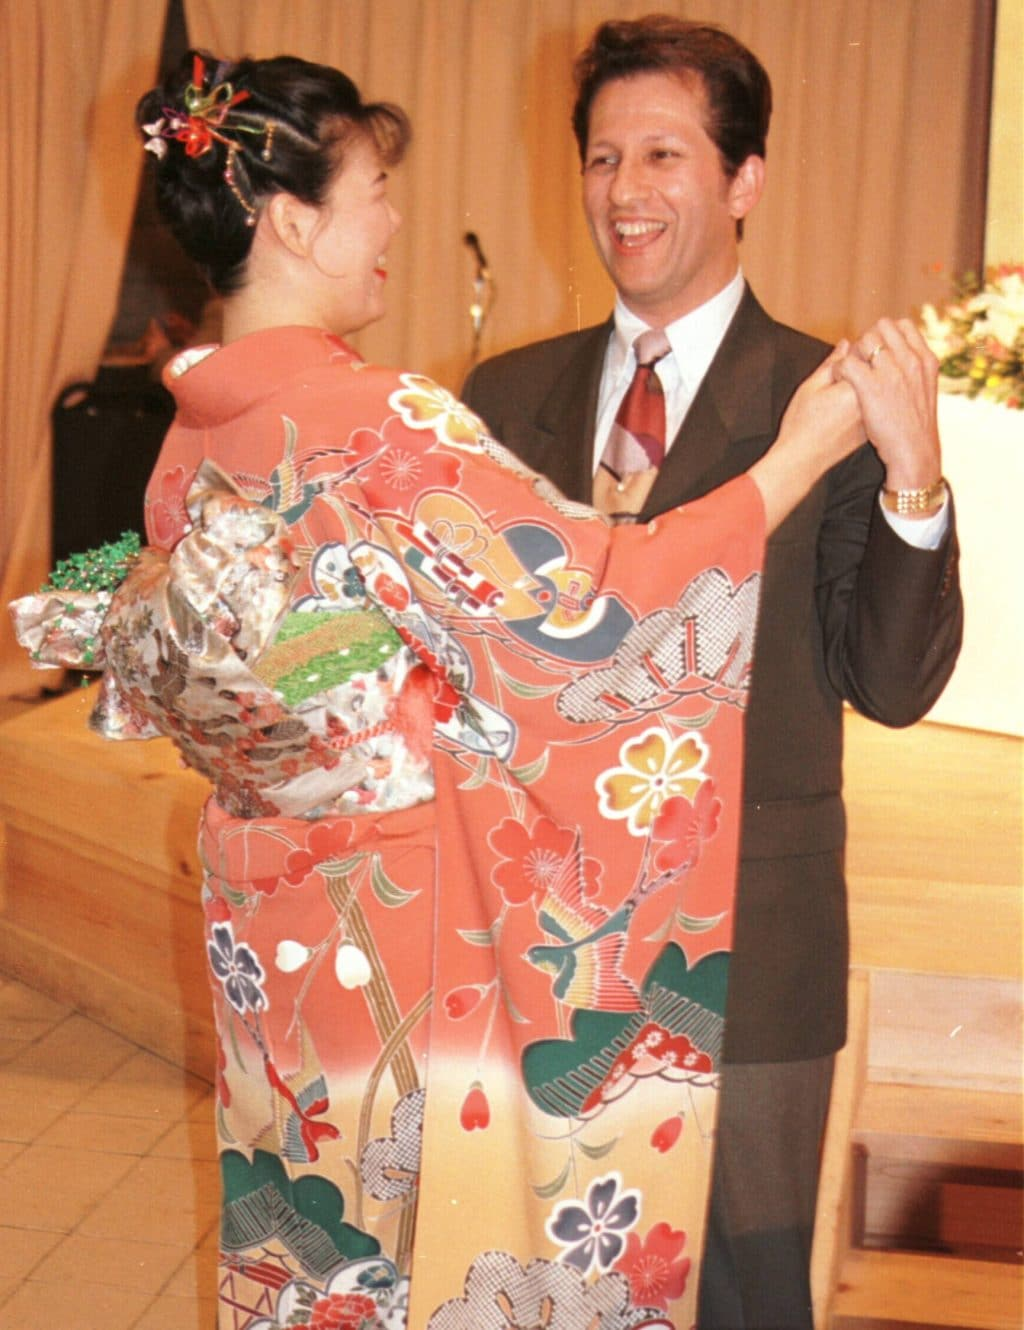 The Asian Wedding Reception